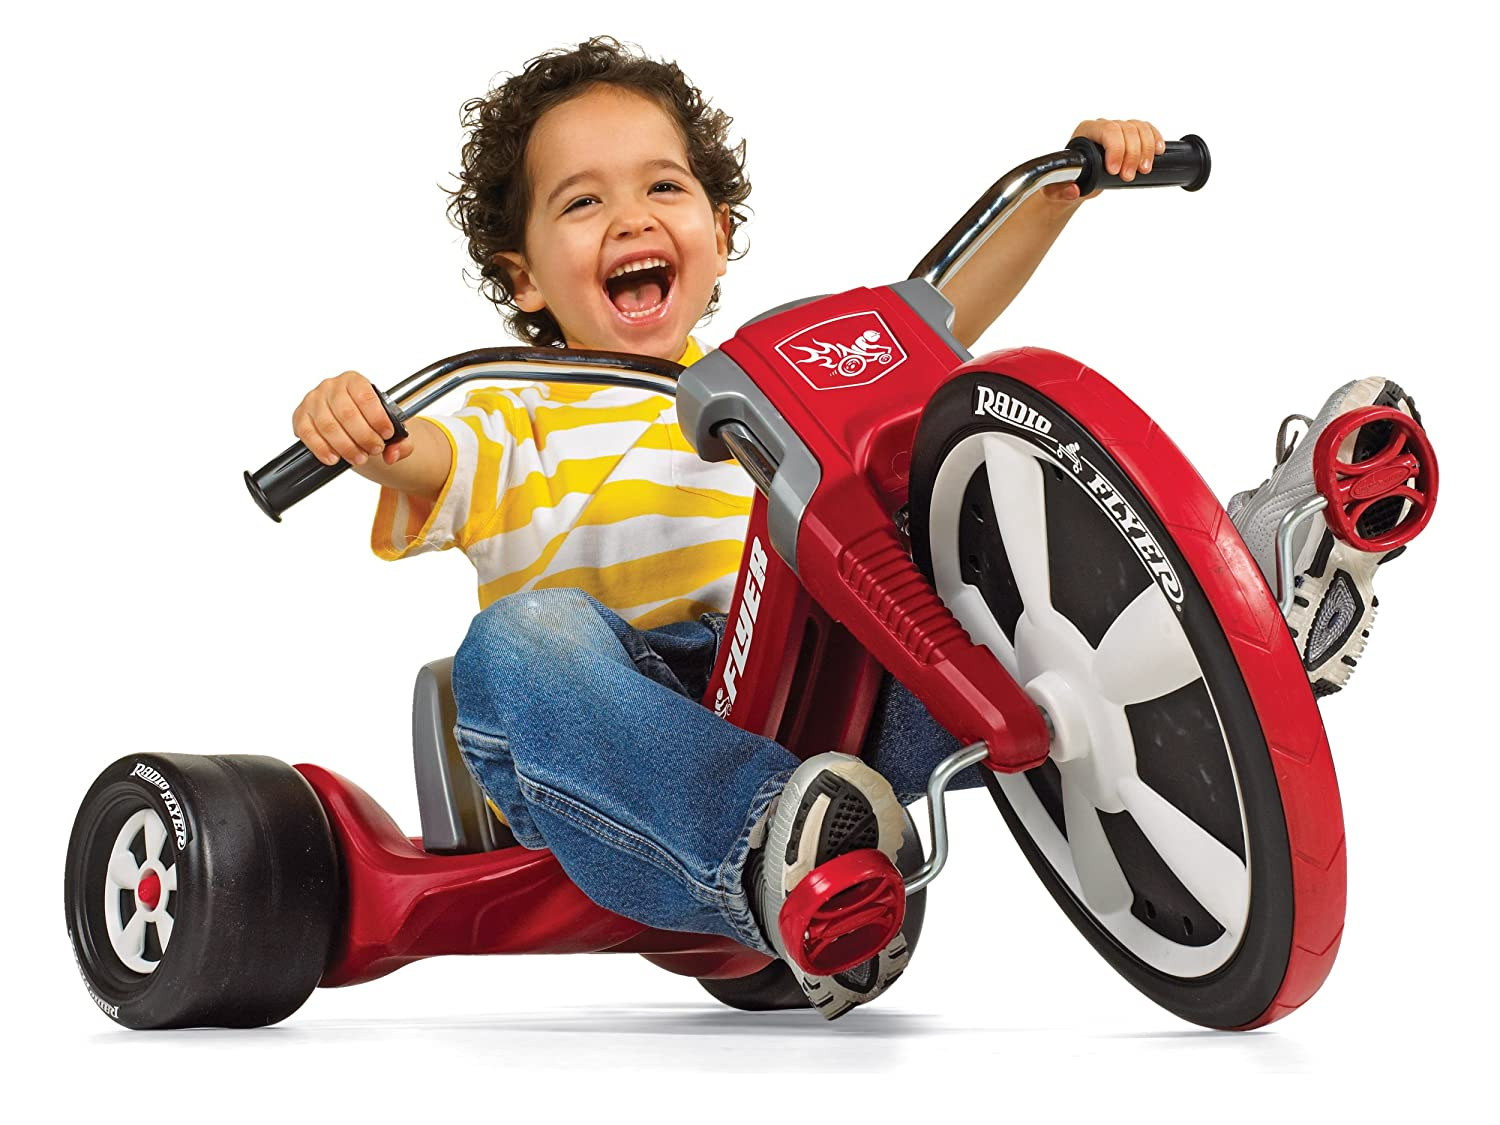 Best Big Wheels for Toddlers, Kids and Brands To Avoid ... |Toddler Radio Flyer Big Wheel